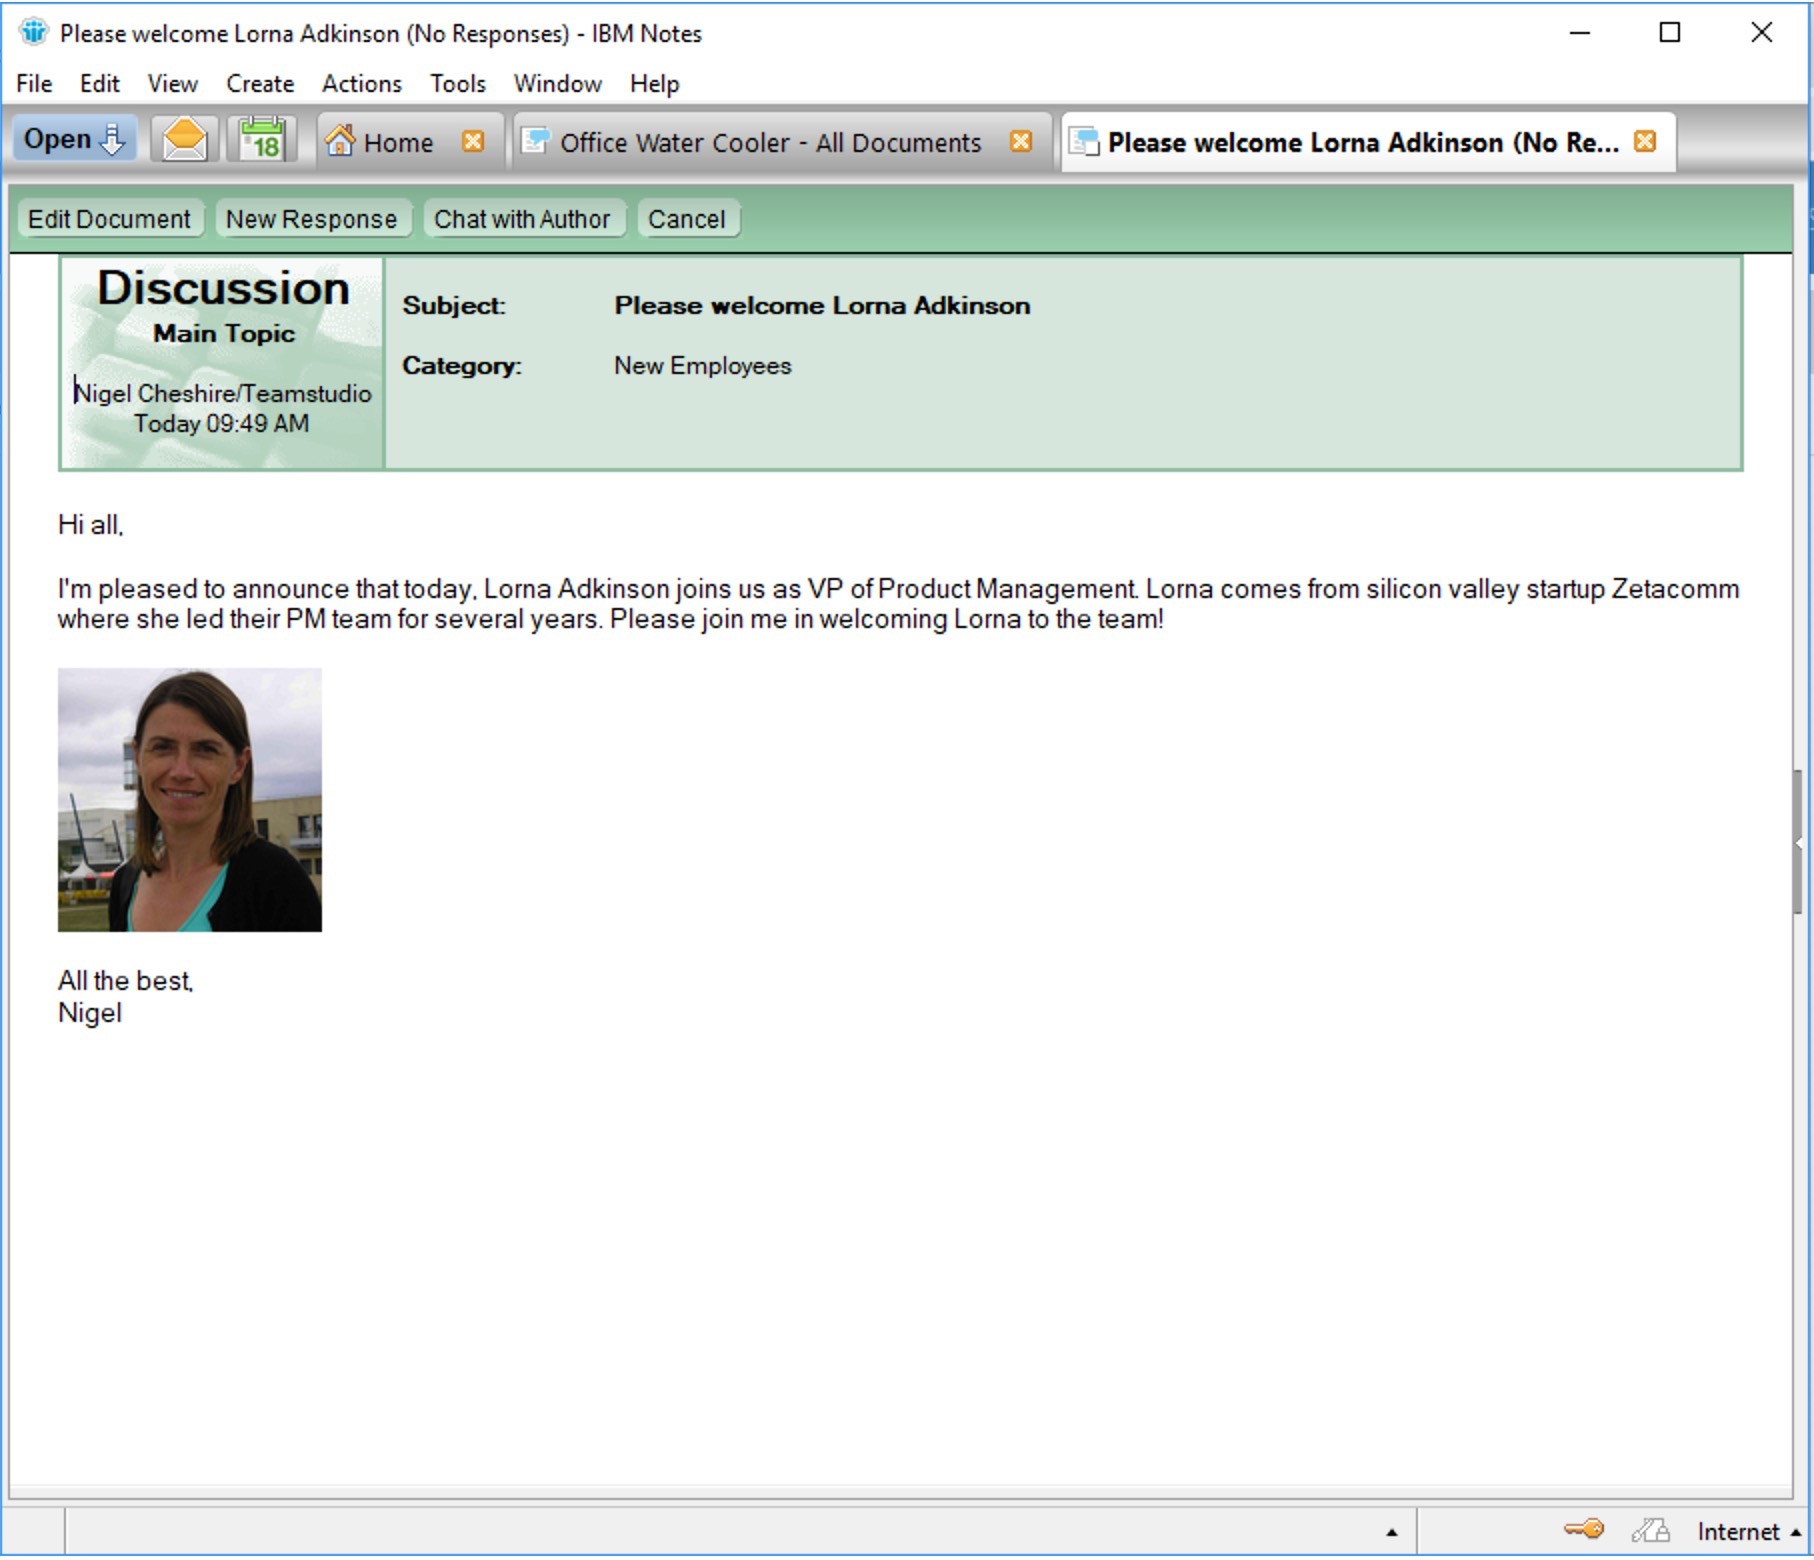 Discussion database in Notes Client